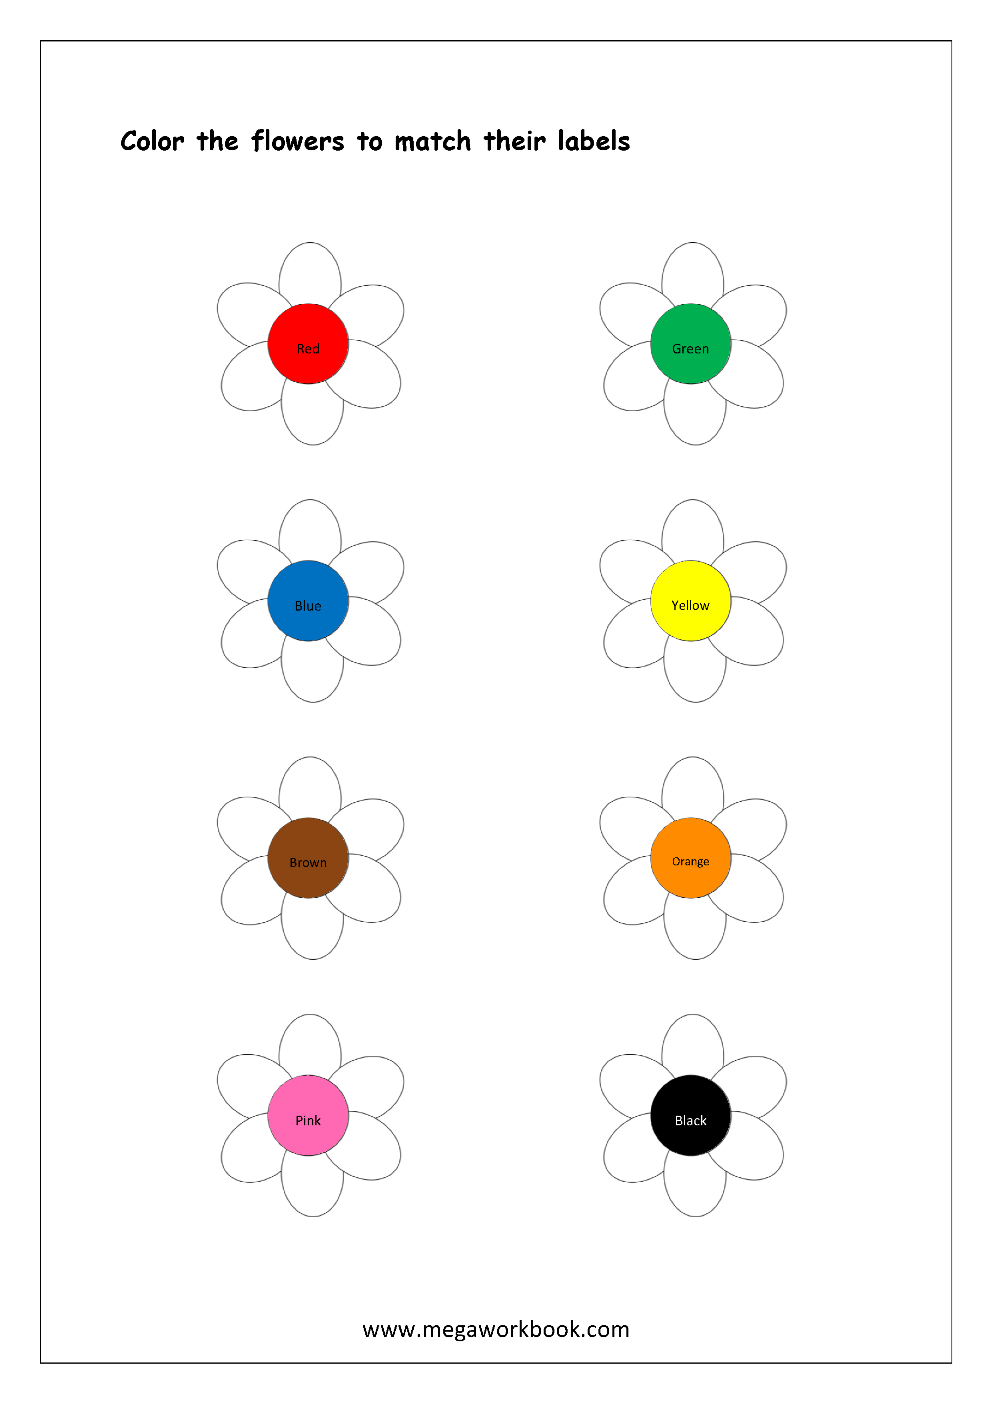 Free Printable Color Recognition Worksheets - Colormatching Hint | Color Recognition Worksheets Free Printable